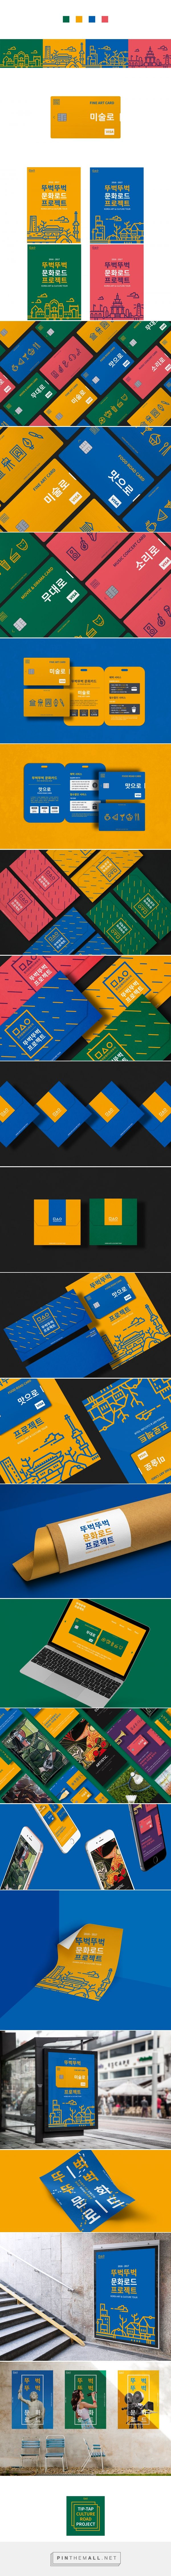 TIP-TAP Culture Card on Behance - created via https://pinthemall.net